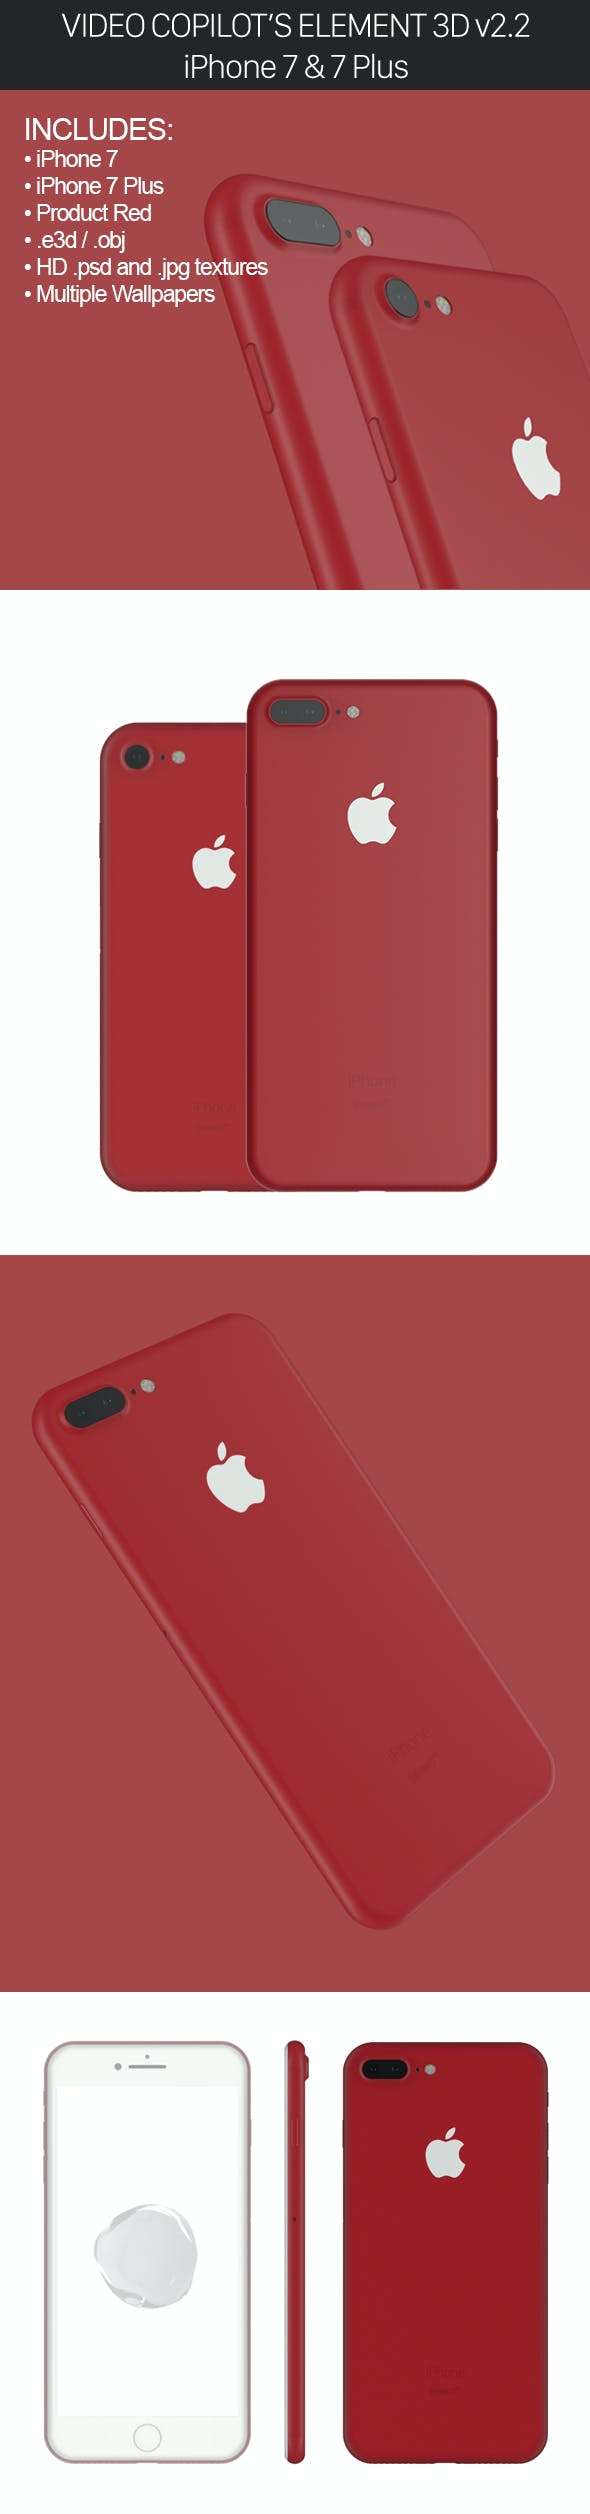 Element3D V2 2 iPhone 7 and 7 Plus Product Red by Mr-Matt